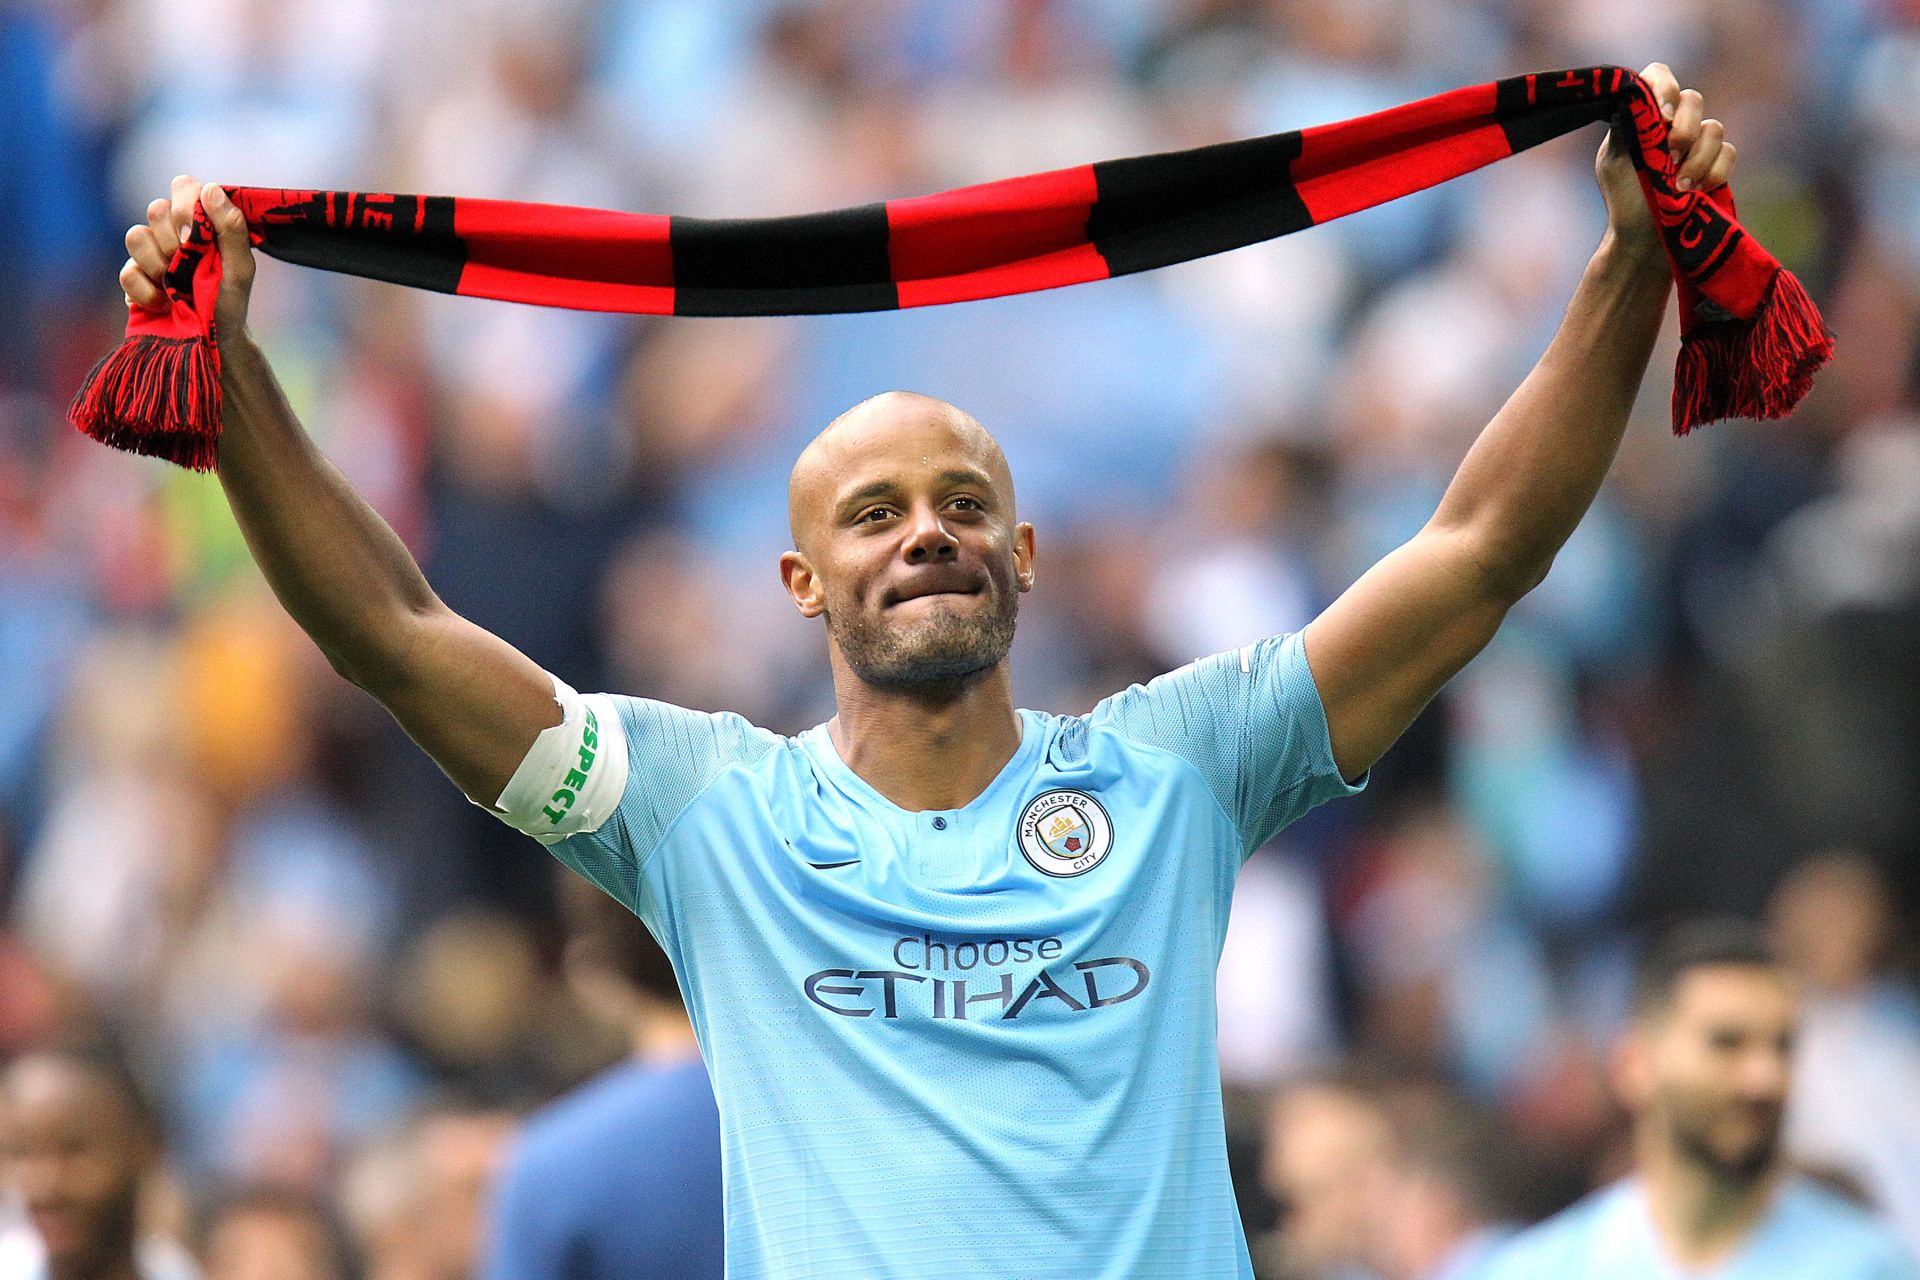 POLAND RIGHTS ONLY Vincent Kompany of Manchester City celebrates after the FA Cup Final match between Manchester City and Watford at the Etihad Stadium on May 18th 2019 in Manchester, England. (Photo by Matt Bradshaw/phcimages.com) PUCHAR ANGLII PILKA NOZNA SEZON 2018/2019 FOT.PHCIMAGES/NEWSPIX.PL POLAND ONLY!!! --- Newspix.pl *** Local Caption *** www.newspix.pl mail us: info@newspix.pl call us: 0048 022 23 22 222 --- Polish Picture Agency by Ringier Axel Springer Poland